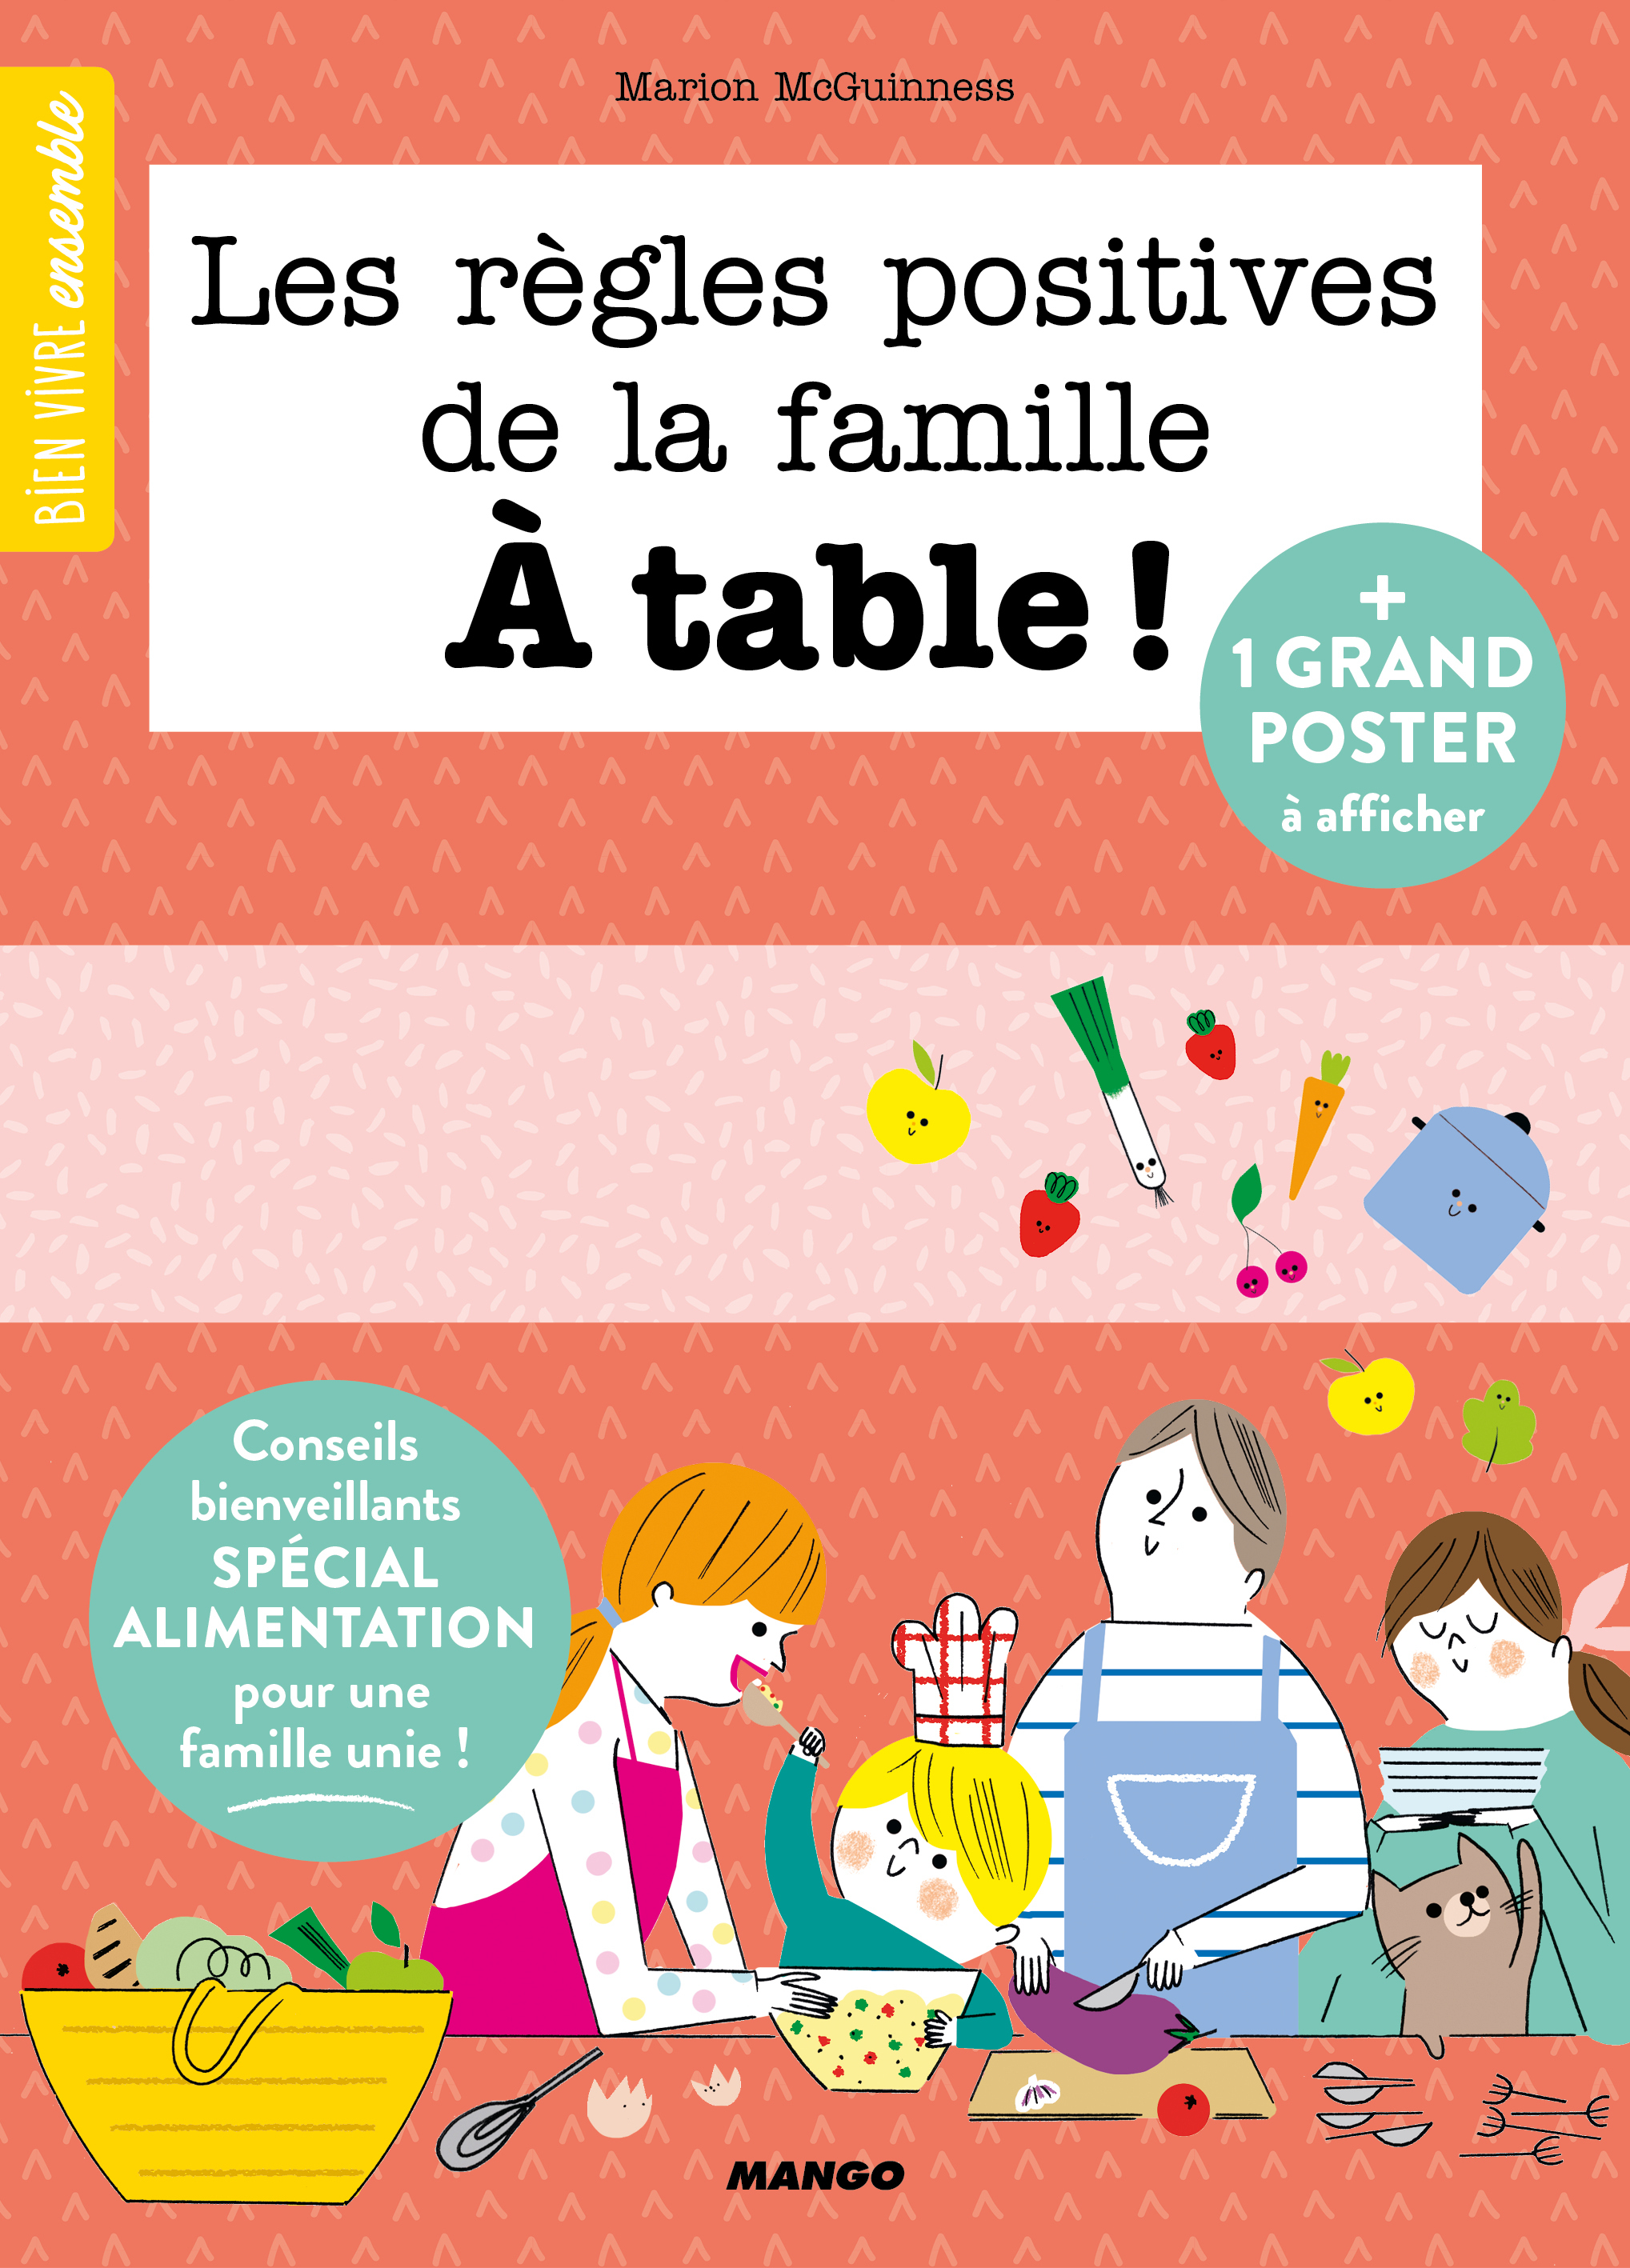 LES REGLES POSITIVES DE LA FAMILLE A TABLE !